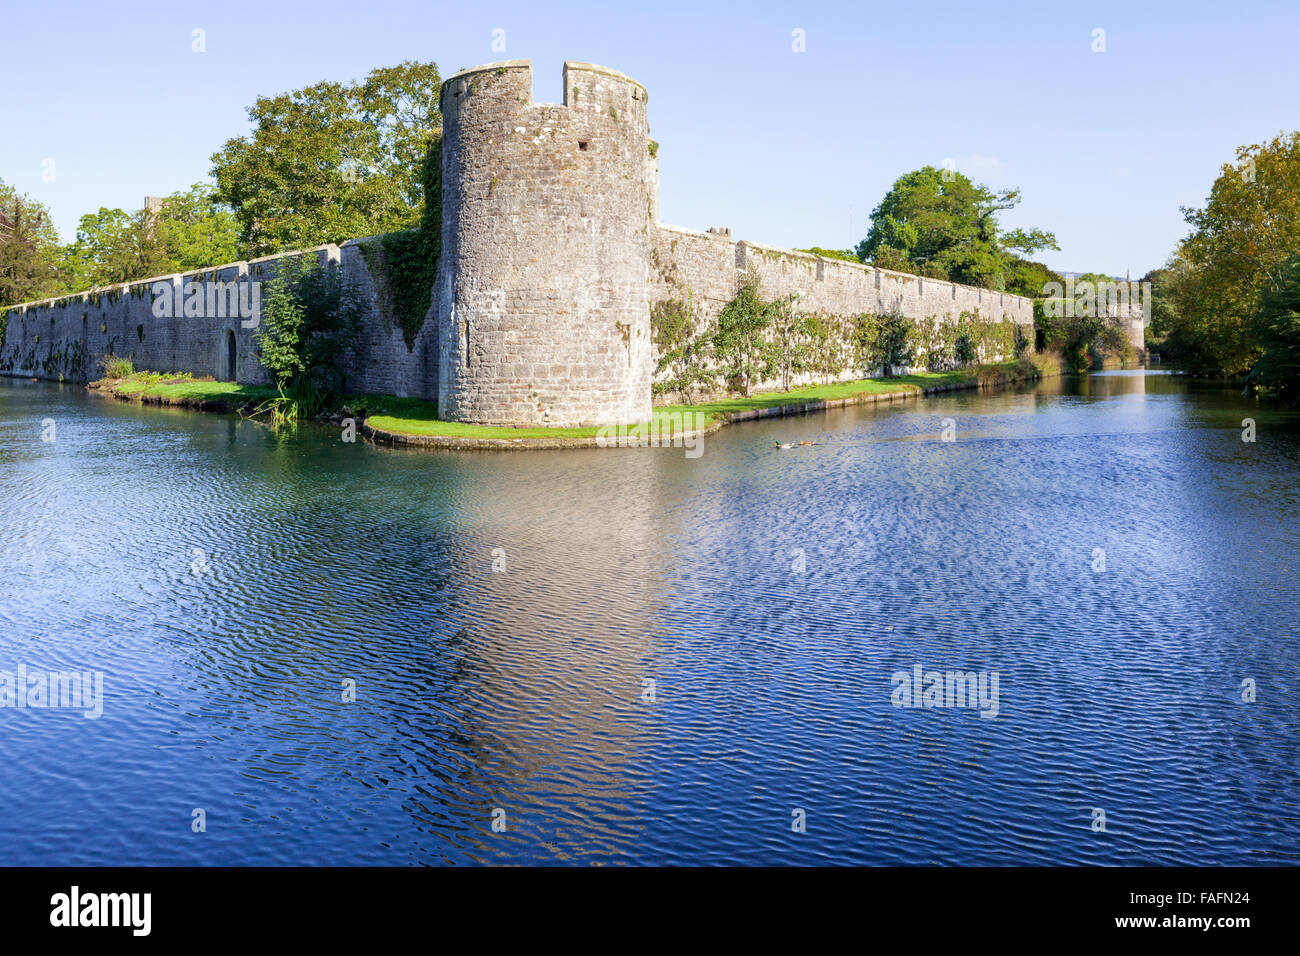 The 14th century moat surrounding the Bishops Palace in the cathedral city of Wells, Somerset UK - Stock Image